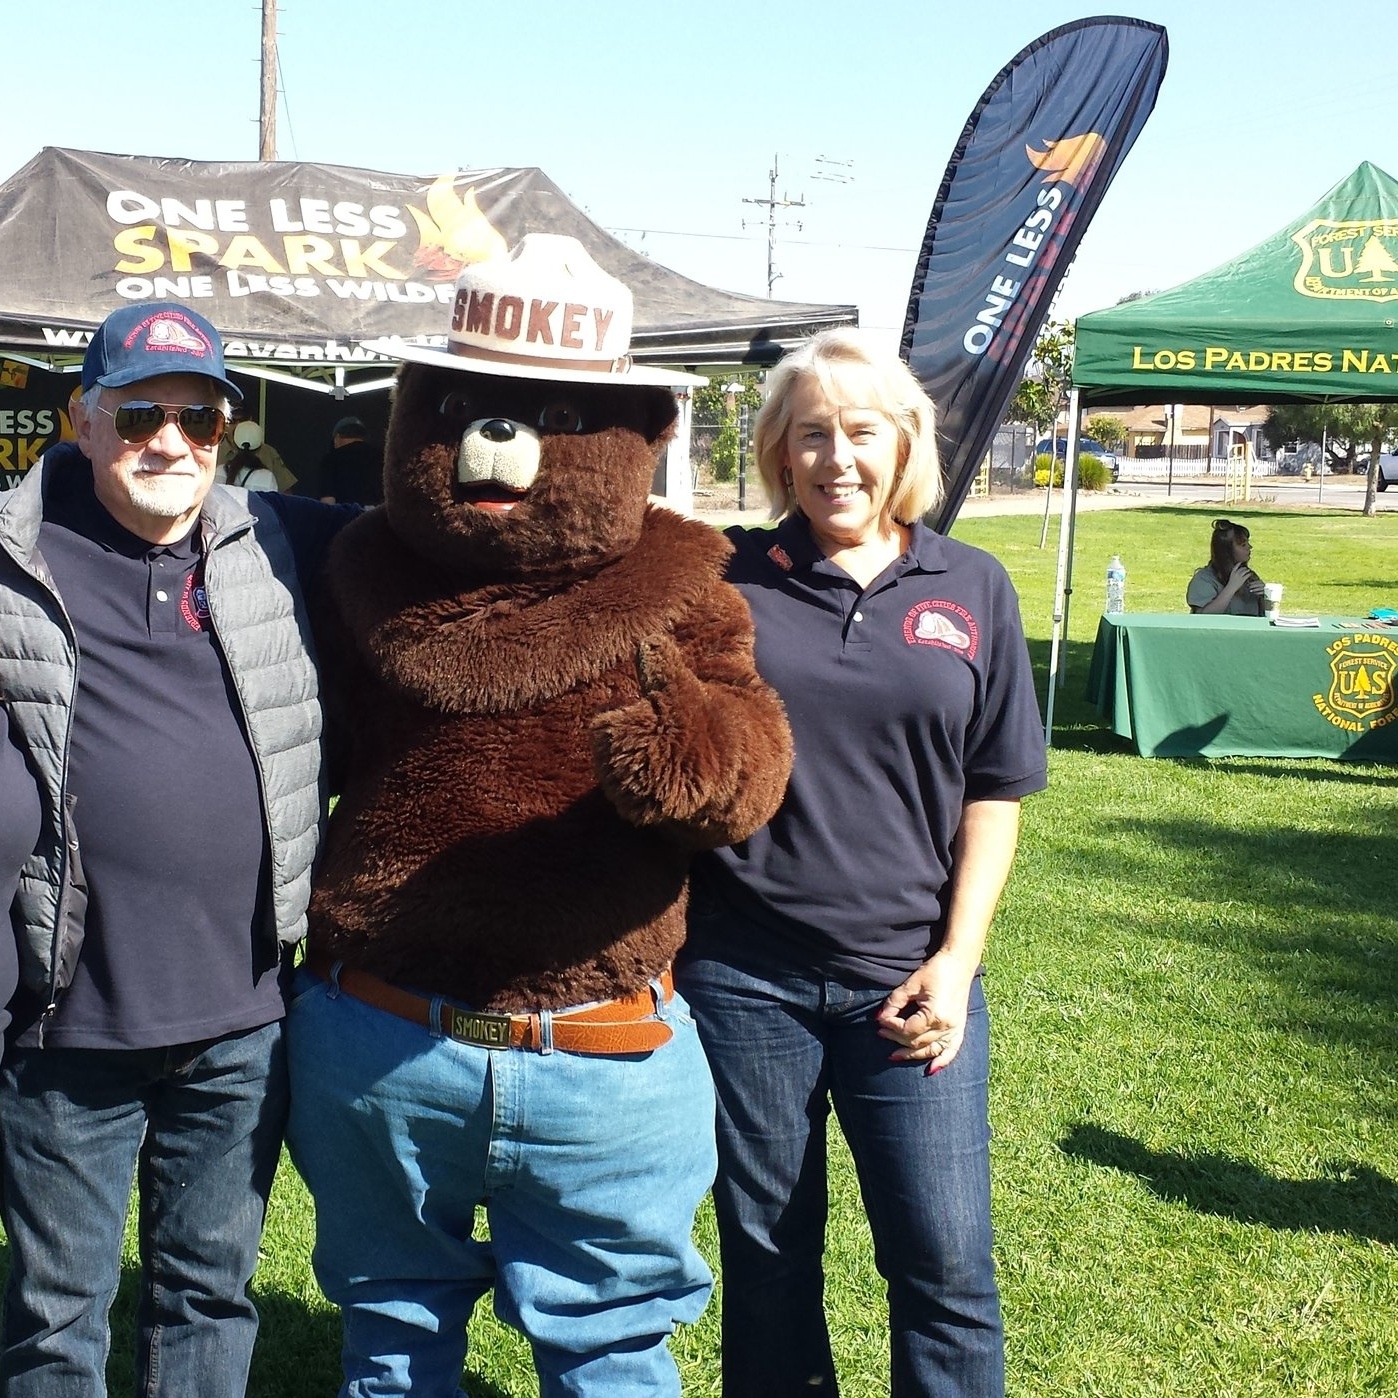 Smokey Bear at the Five Cities Fire Authority Fire and Life Safety Event on October 7th, 2017